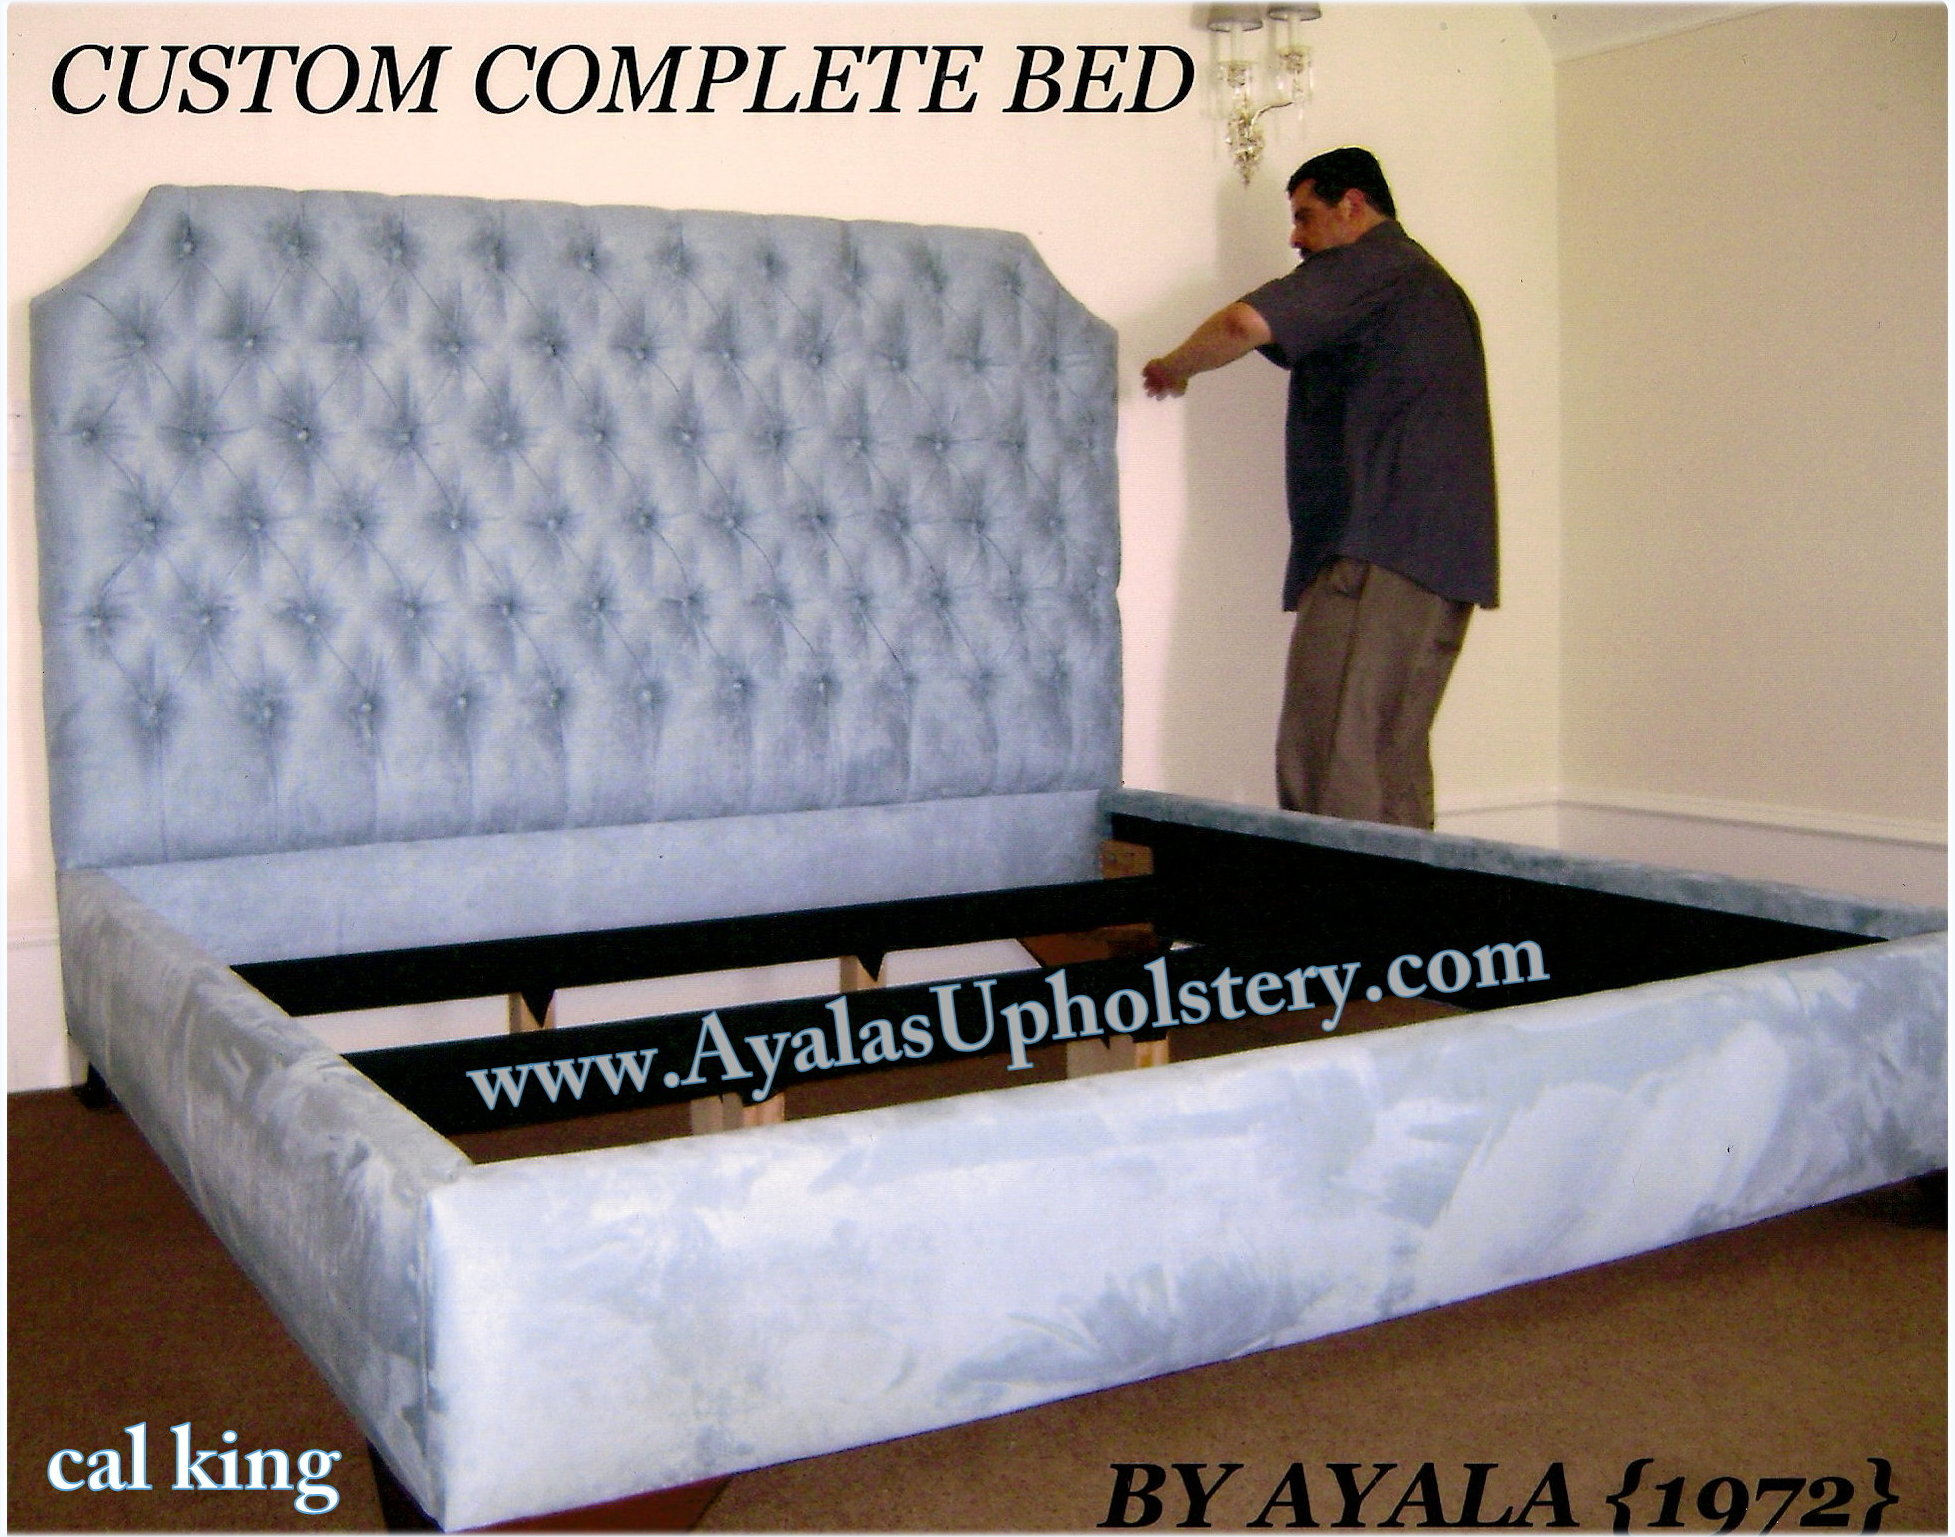 Beds Cal-King Complete Bed By Ayalas Upholstery.jpg